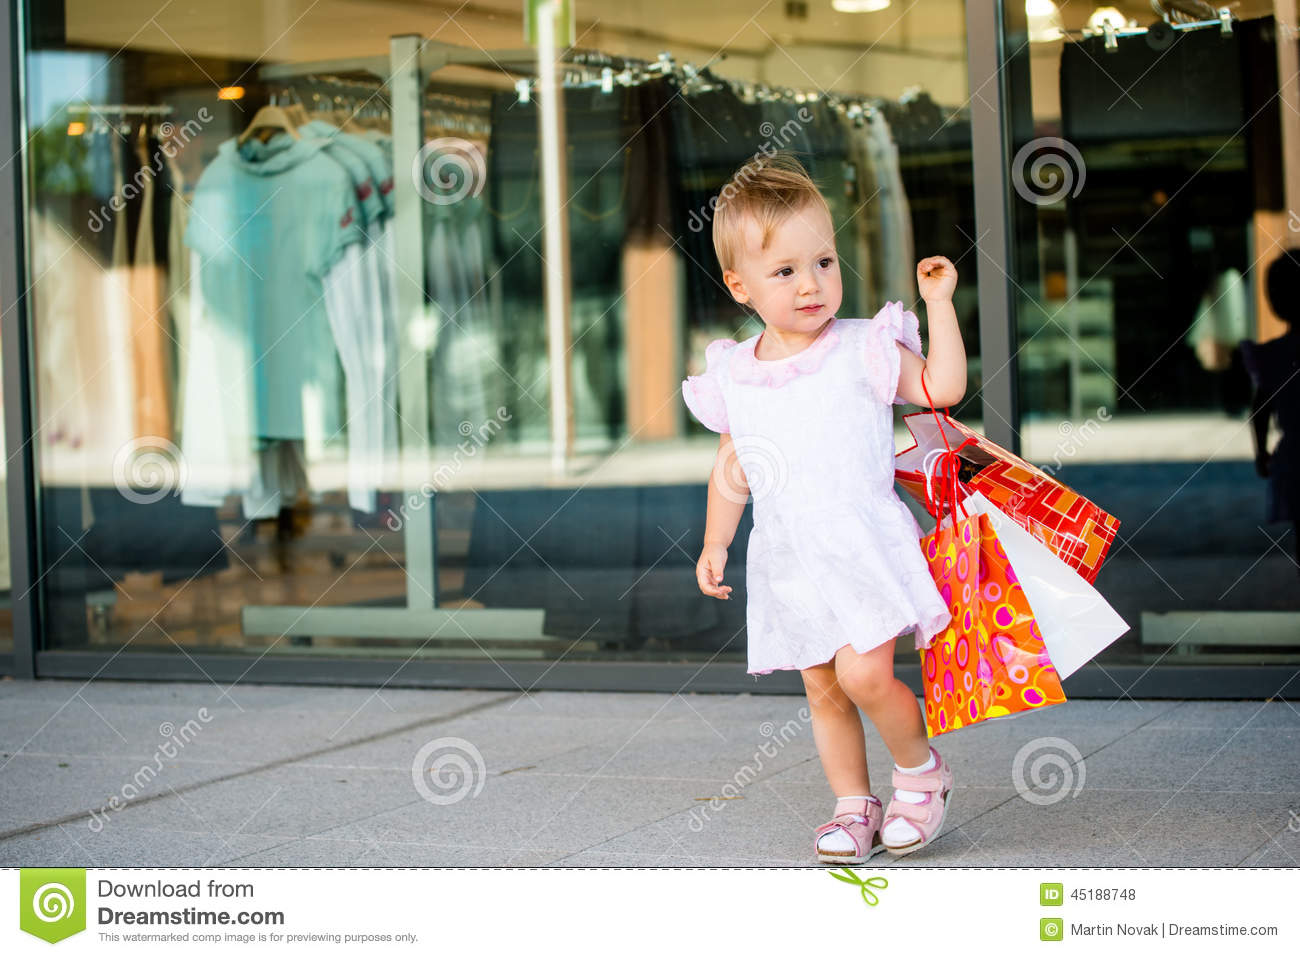 3c670c4d9 Baby shopping stock photo. Image of holding, sale, store - 45188748